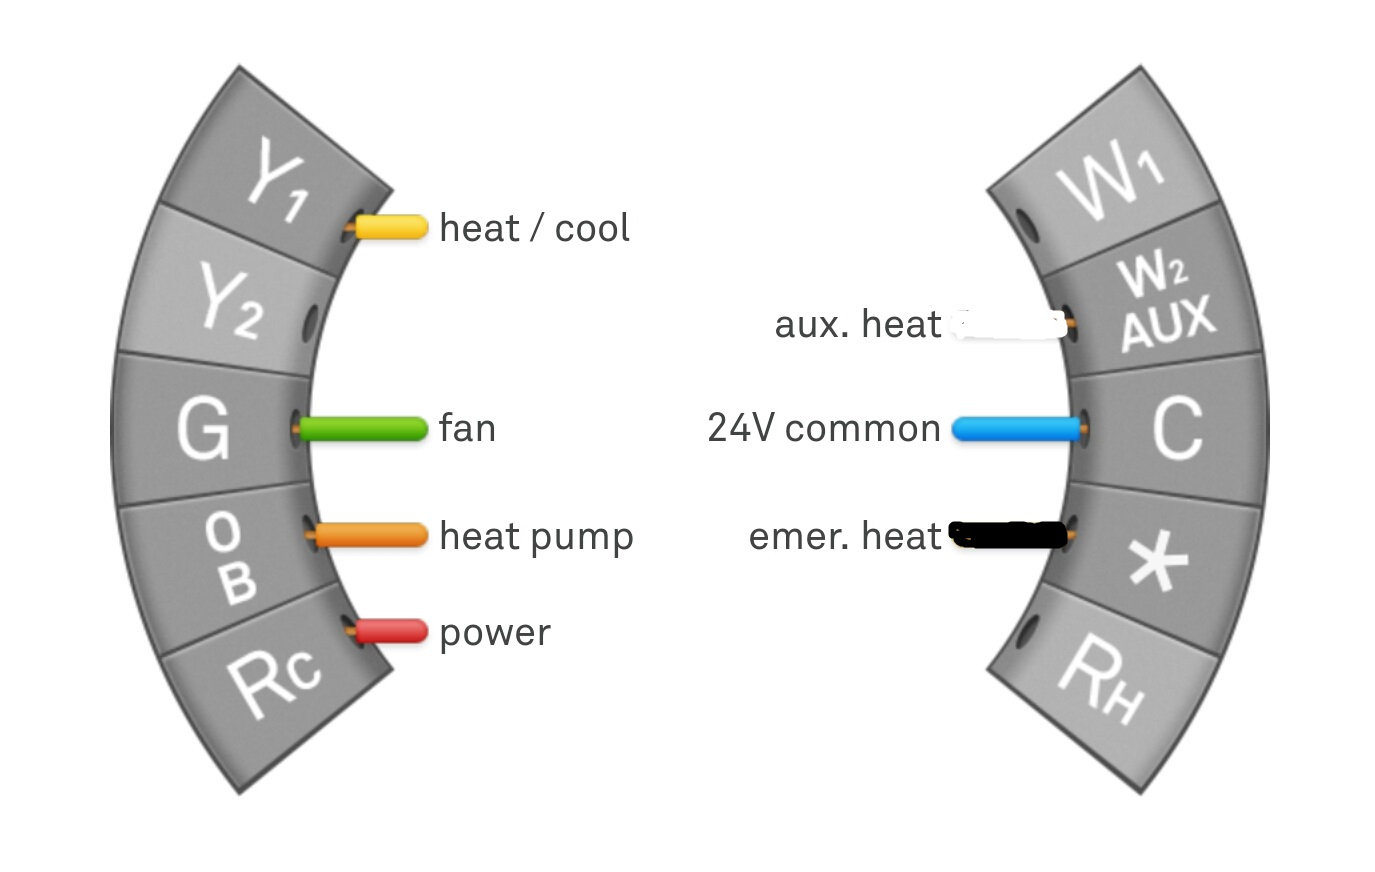 Nest Thermostat Wiring Diagram Heat Pump - Wiring Diagram Home on